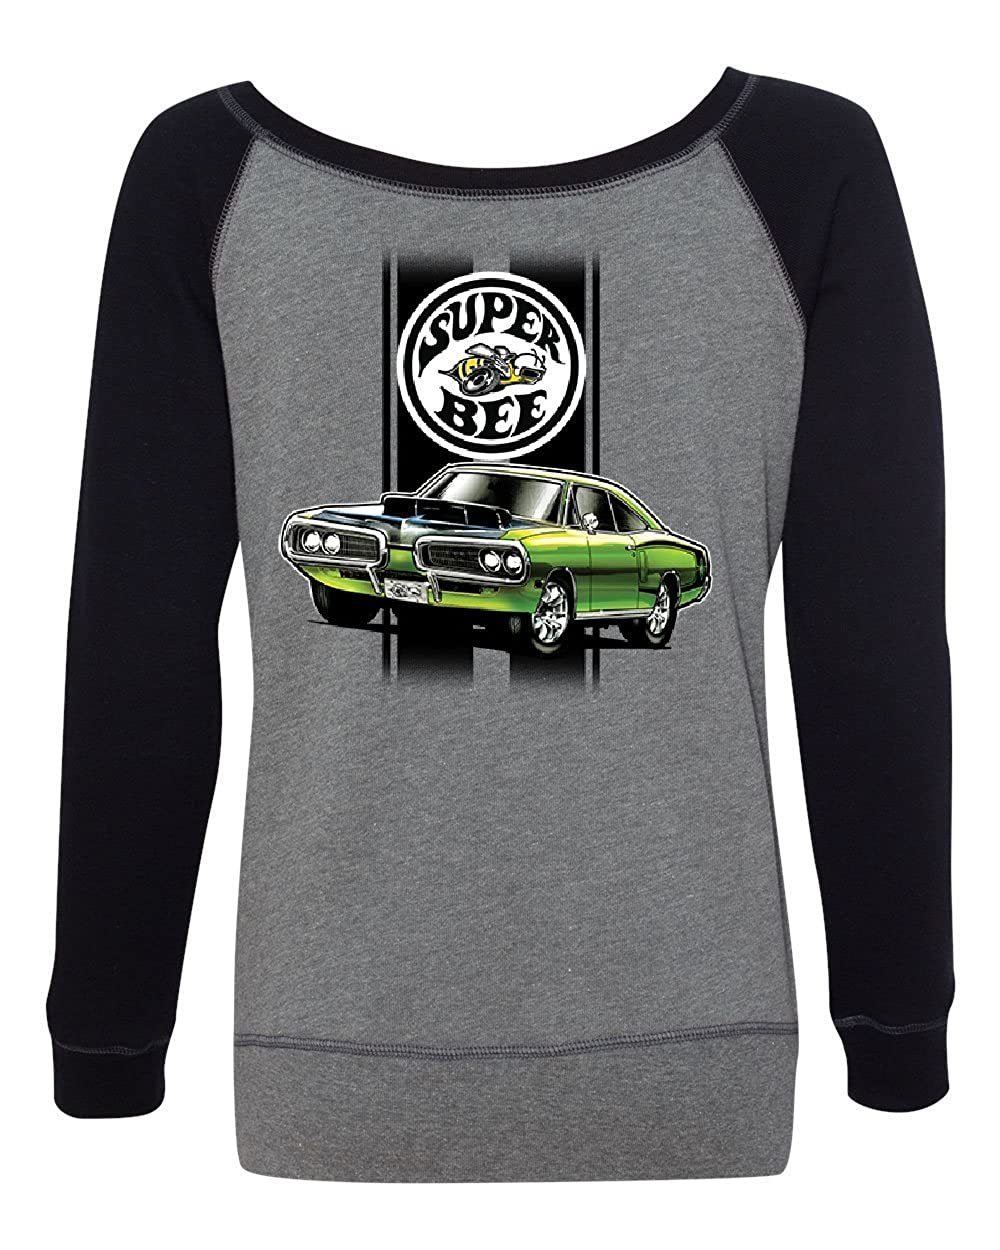 Dodge Green Super Bee Sweatshirt American Classic Muscle Car At Amazon Womens Clothing Store